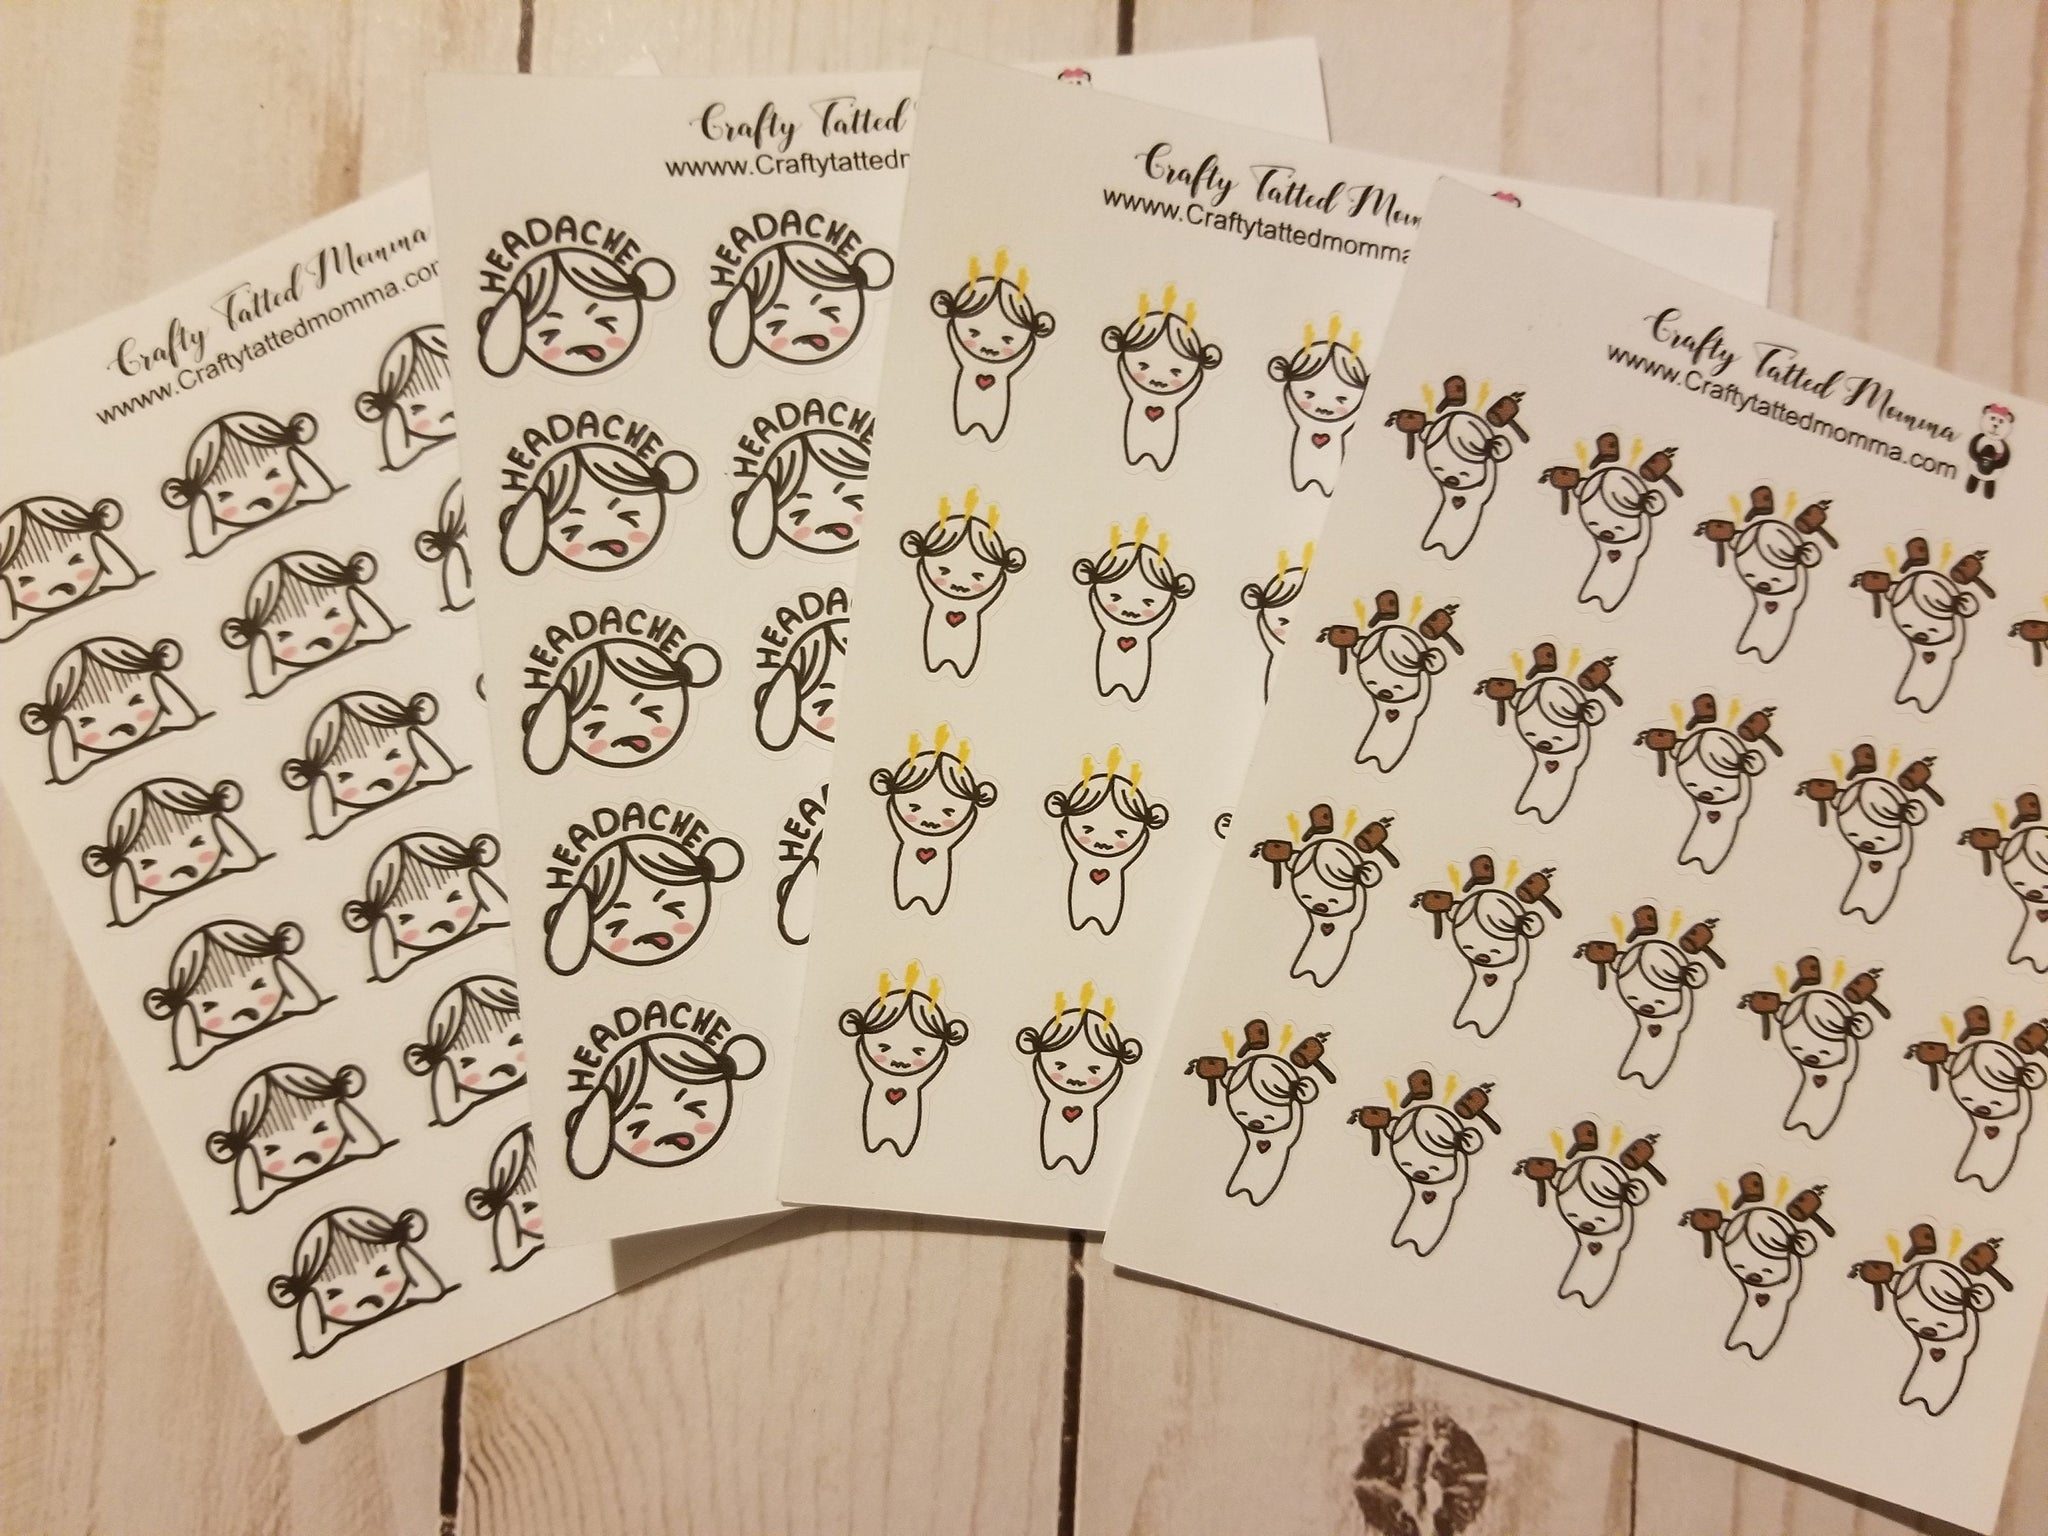 Lil' Mary Headache Stickers / Headache Stickers / Character Stickers / Planner Stickers  / Functional Stickers / Lil' Mary Stickers